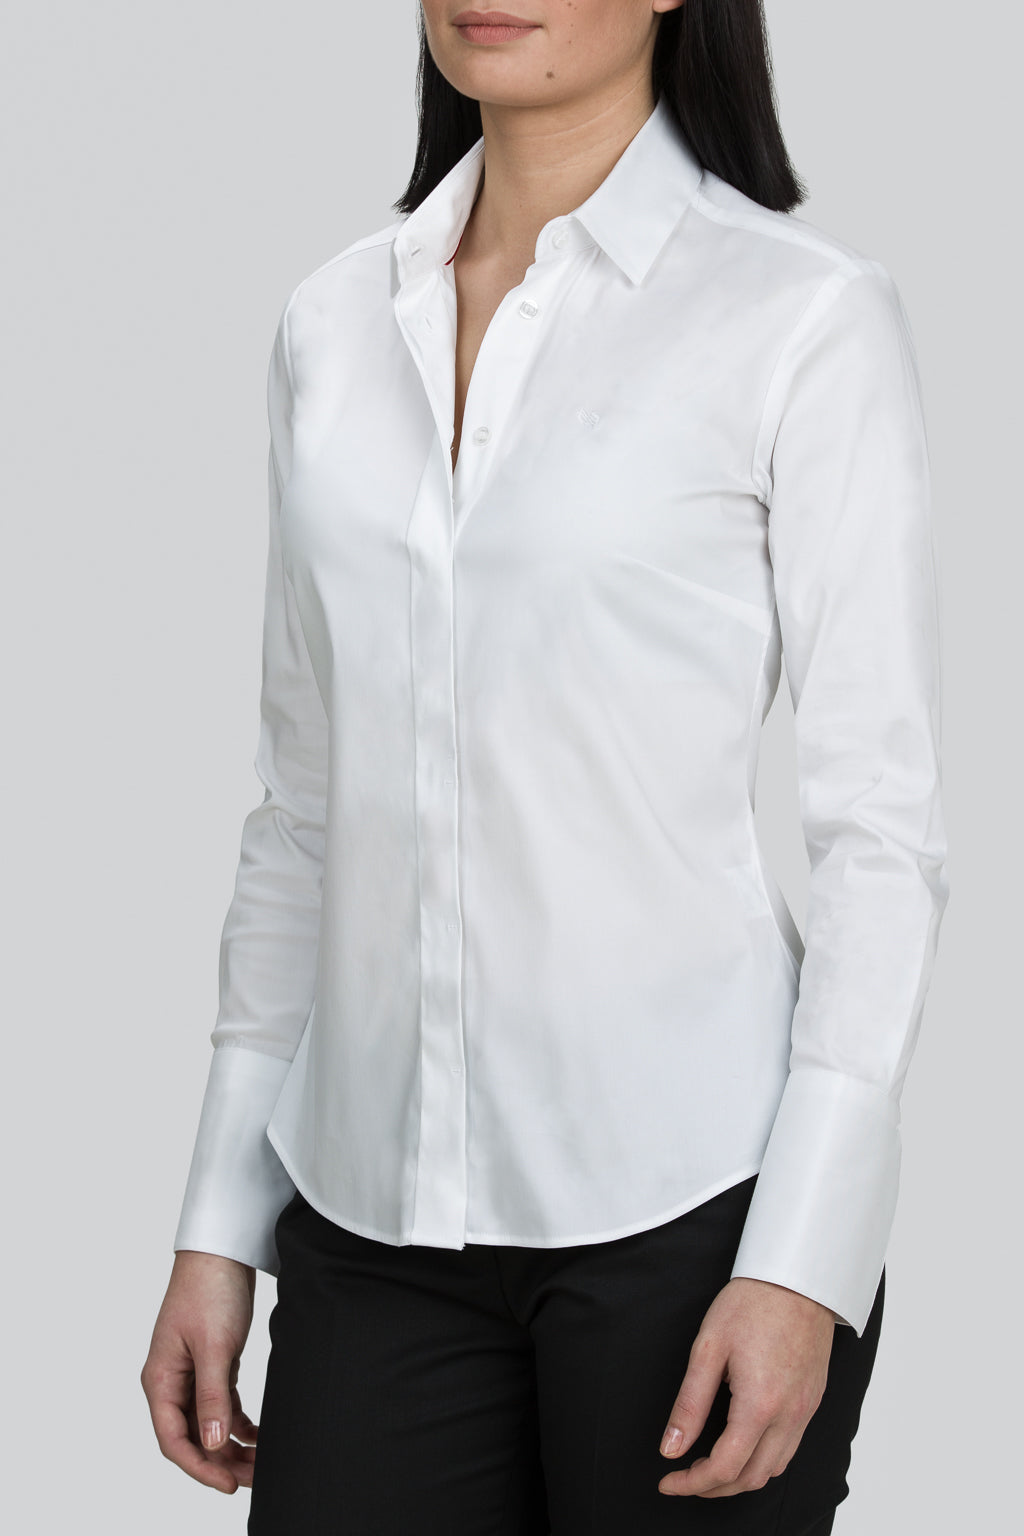 BJÖRT CLASSIC SEMI FITTED SHIRT W/FLY PLACKET